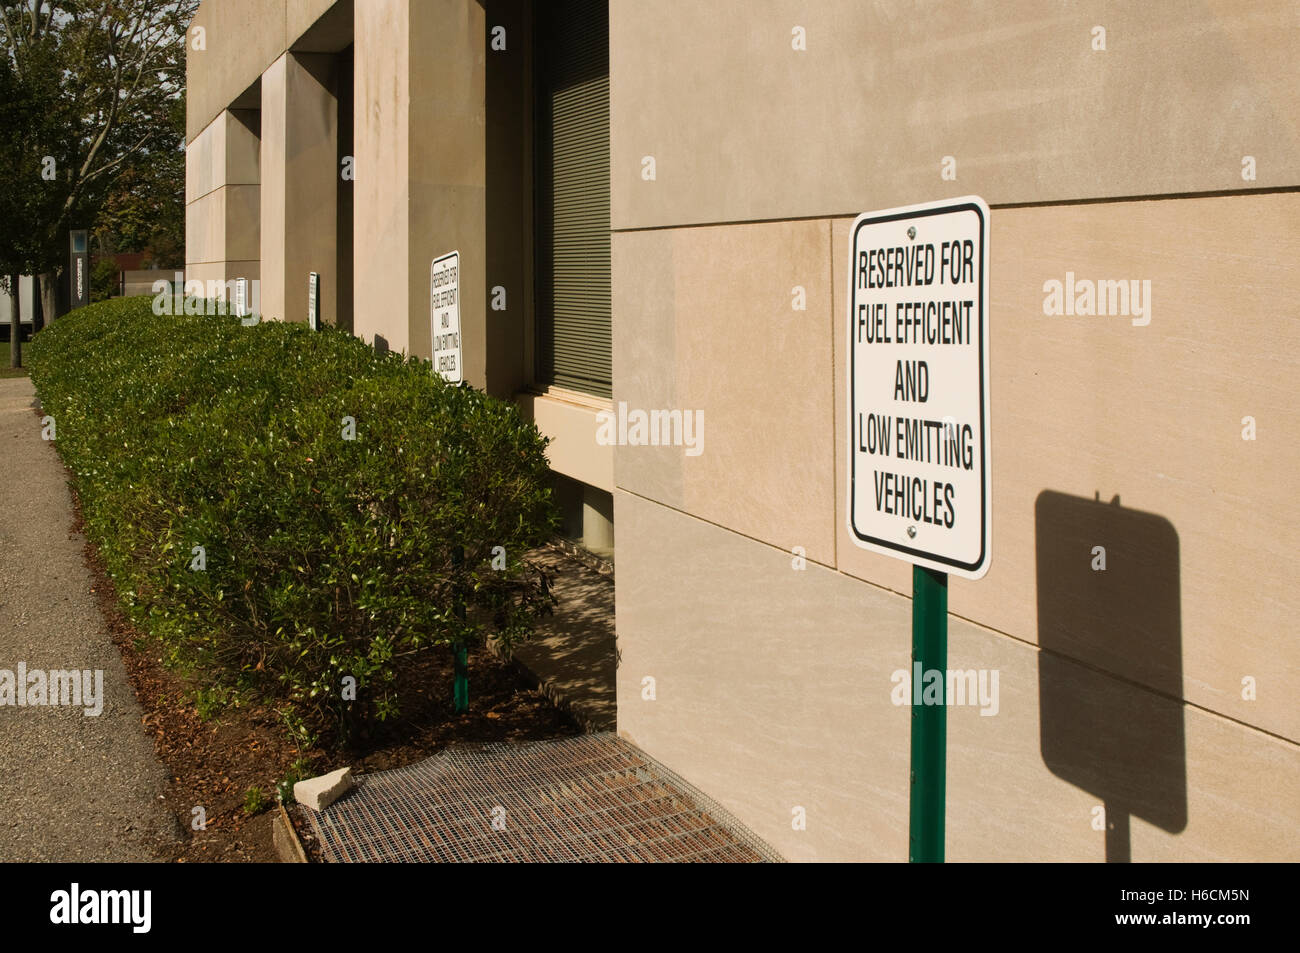 """UNITED STATES OF AMERICA (USA), Middletown, Connecticut, CT, car parking spaces  for """"fuel efficient and low emitting - Stock Image"""